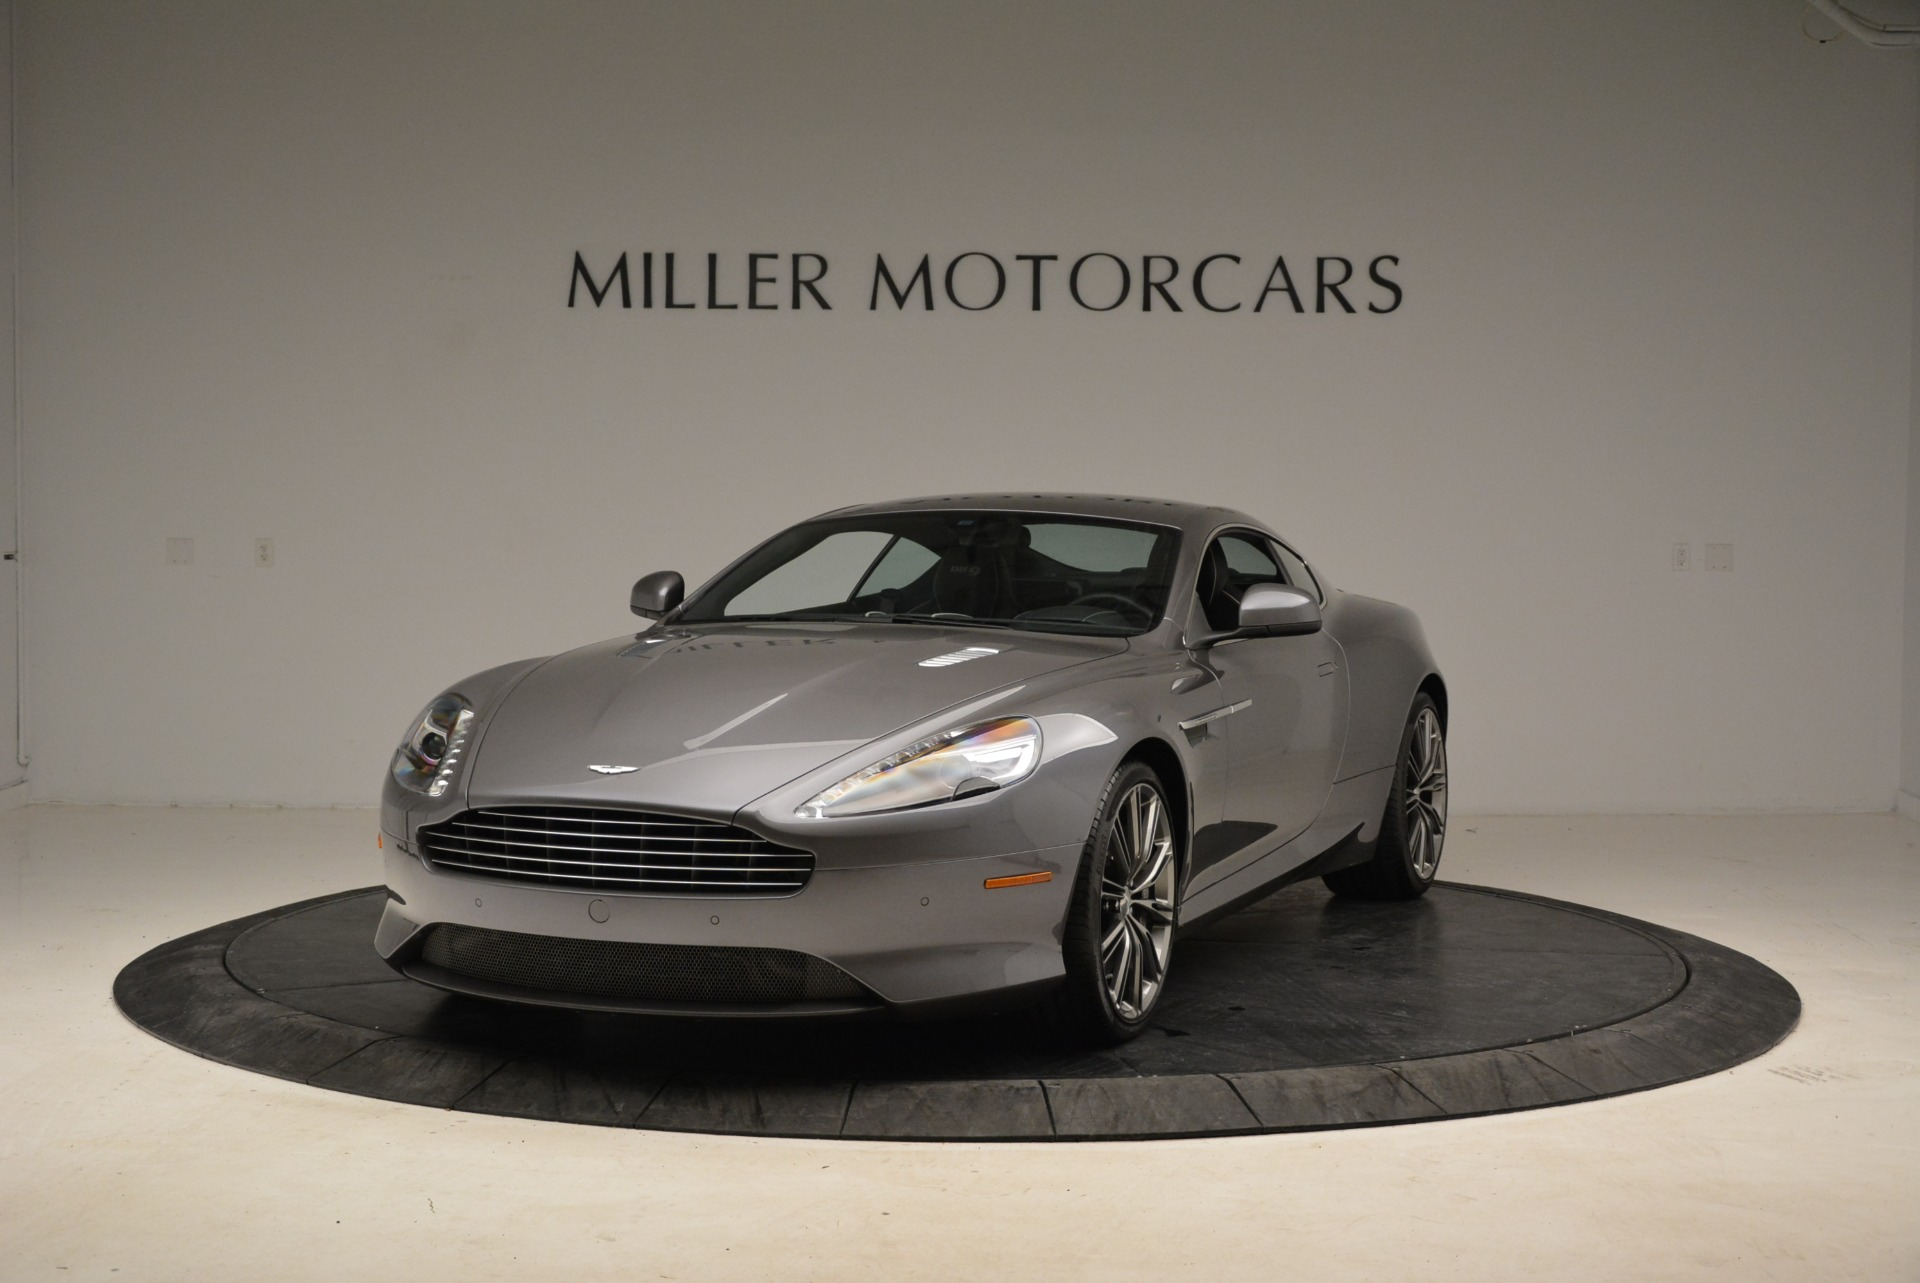 Used 2015 Aston Martin DB9 for sale Sold at Bentley Greenwich in Greenwich CT 06830 1